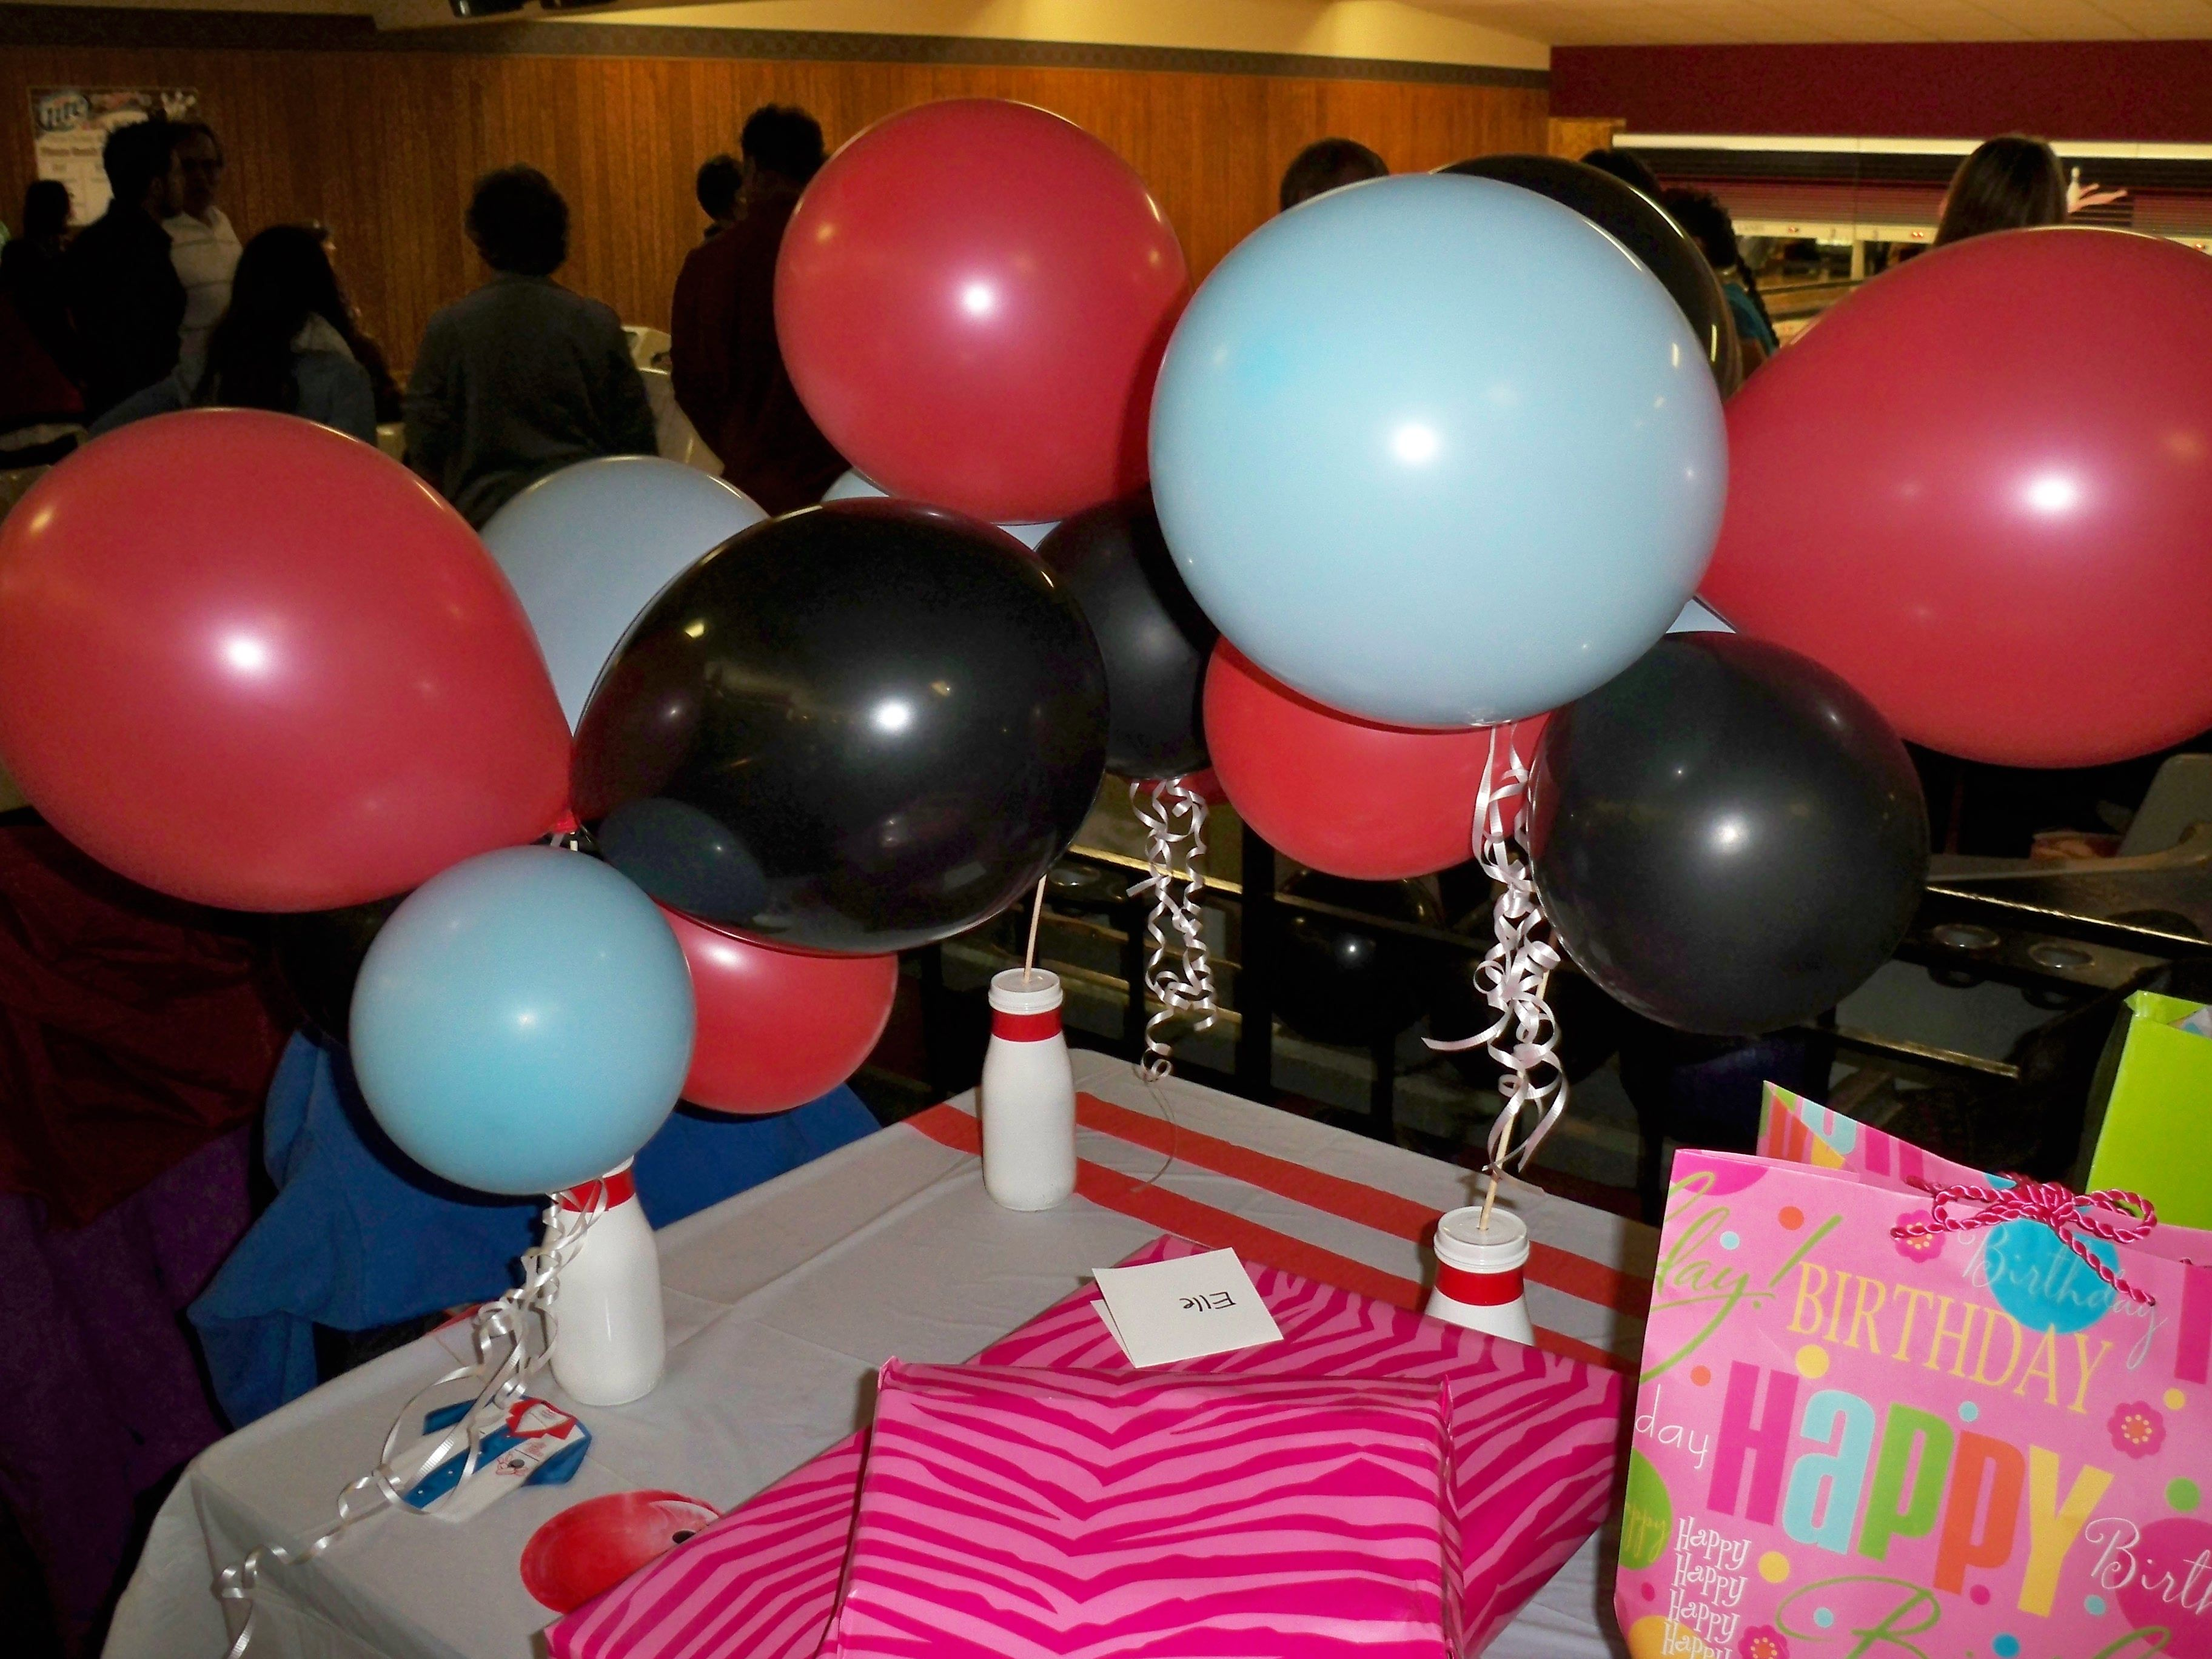 Bowling pin balloons - Bowling Birthday Party Painted Frappucino Bottles With Red Tape For Bowling Pin Look Tie